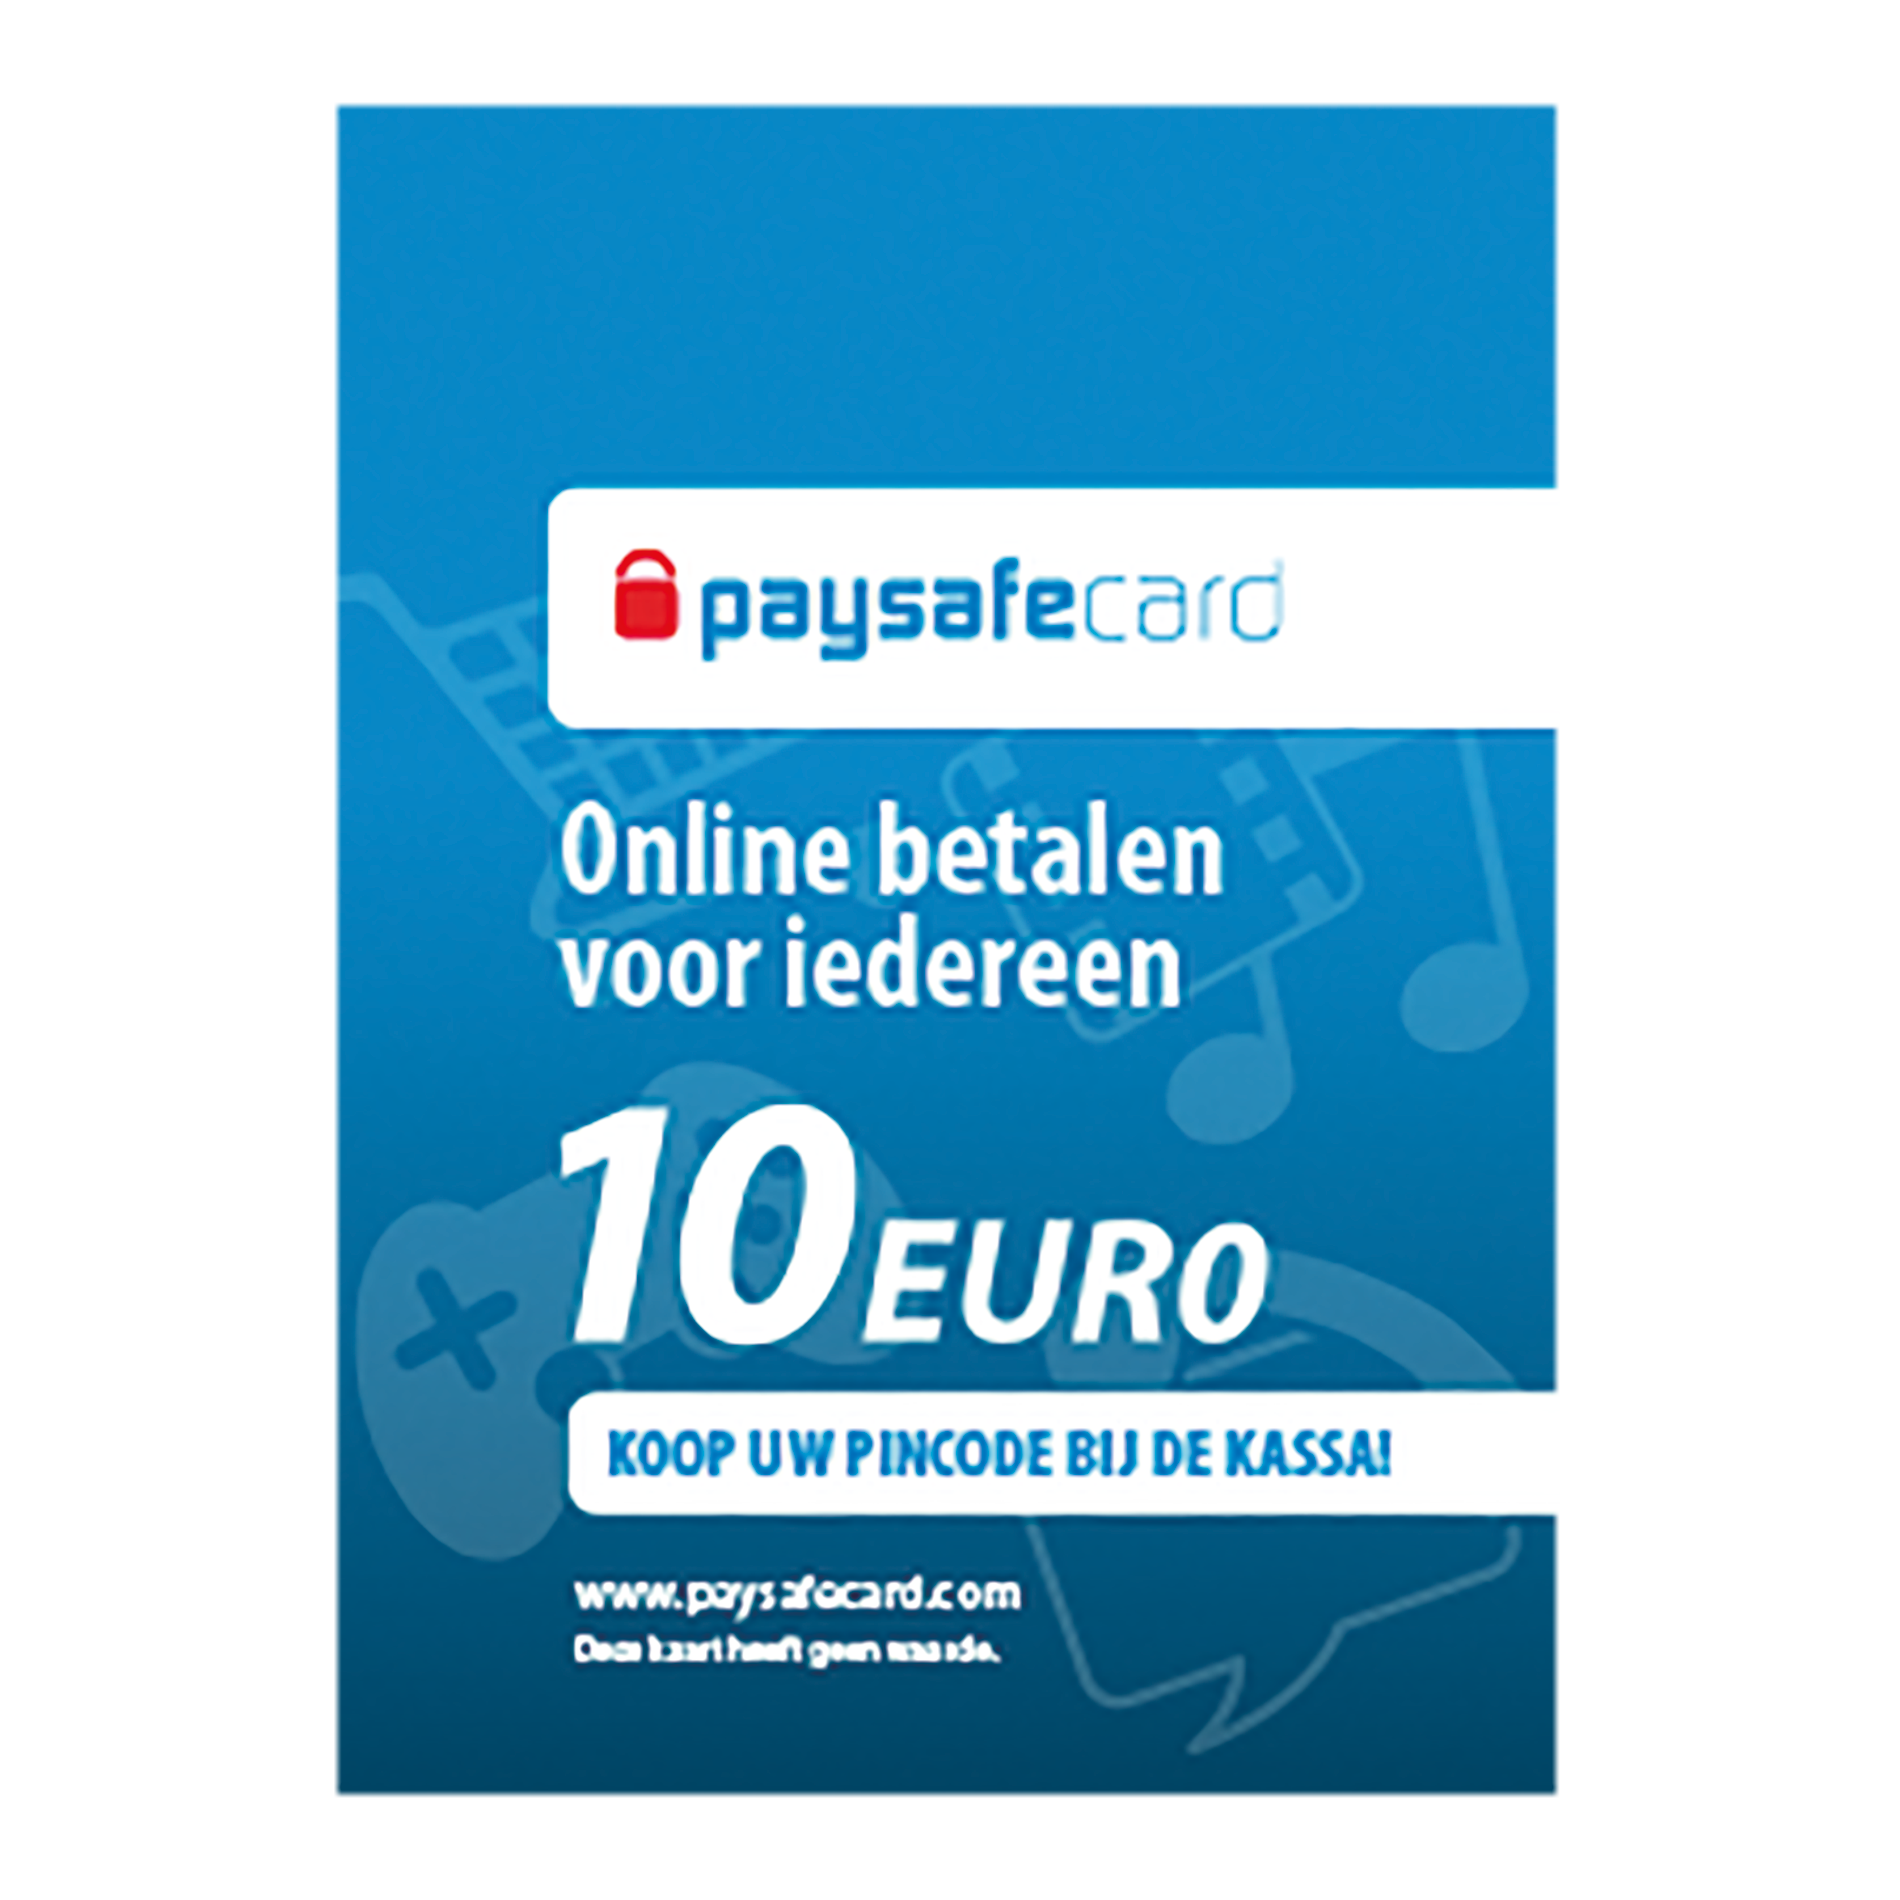 De paysafe Looking for